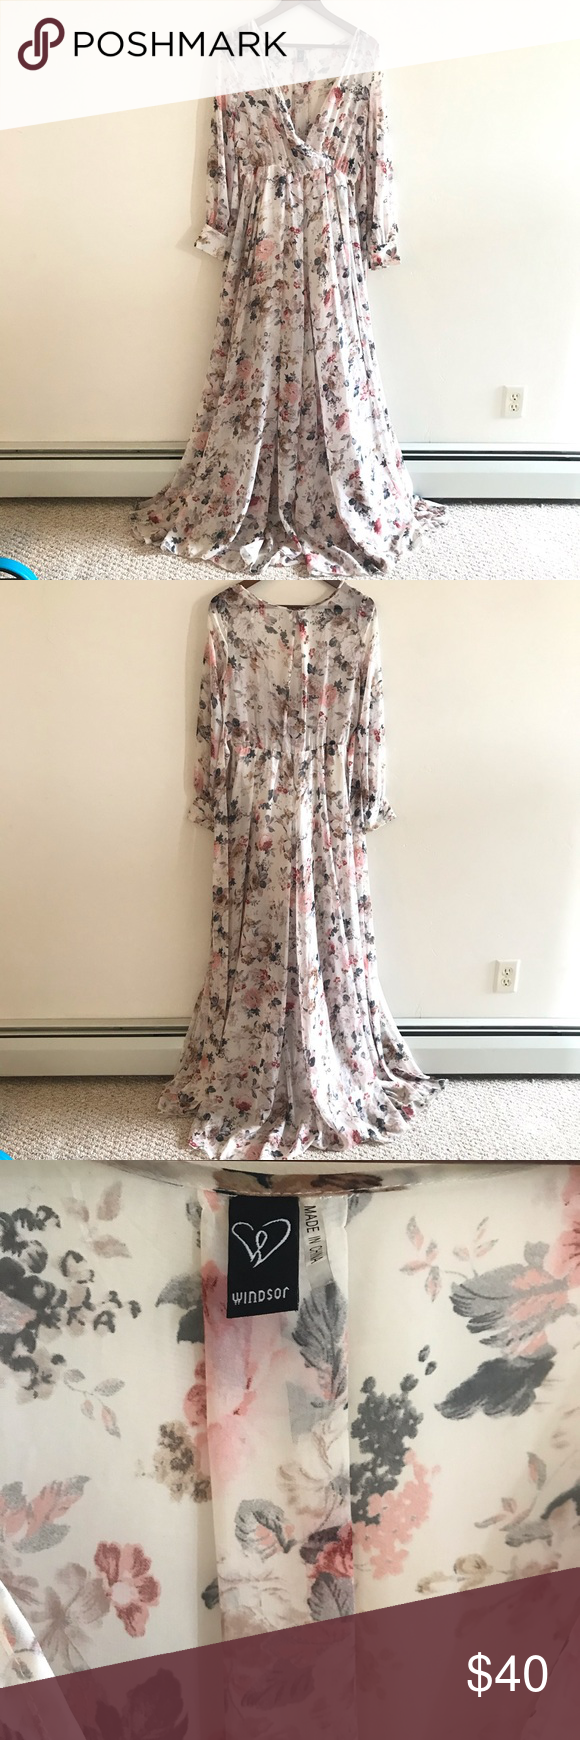 Windsor Floral Long Sleeve Dress Size L I Loved This Dress But I Generally Only Wear My Dresses Once These A Long Sleeve Floral Dress Dresses Clothes Design [ 1740 x 580 Pixel ]